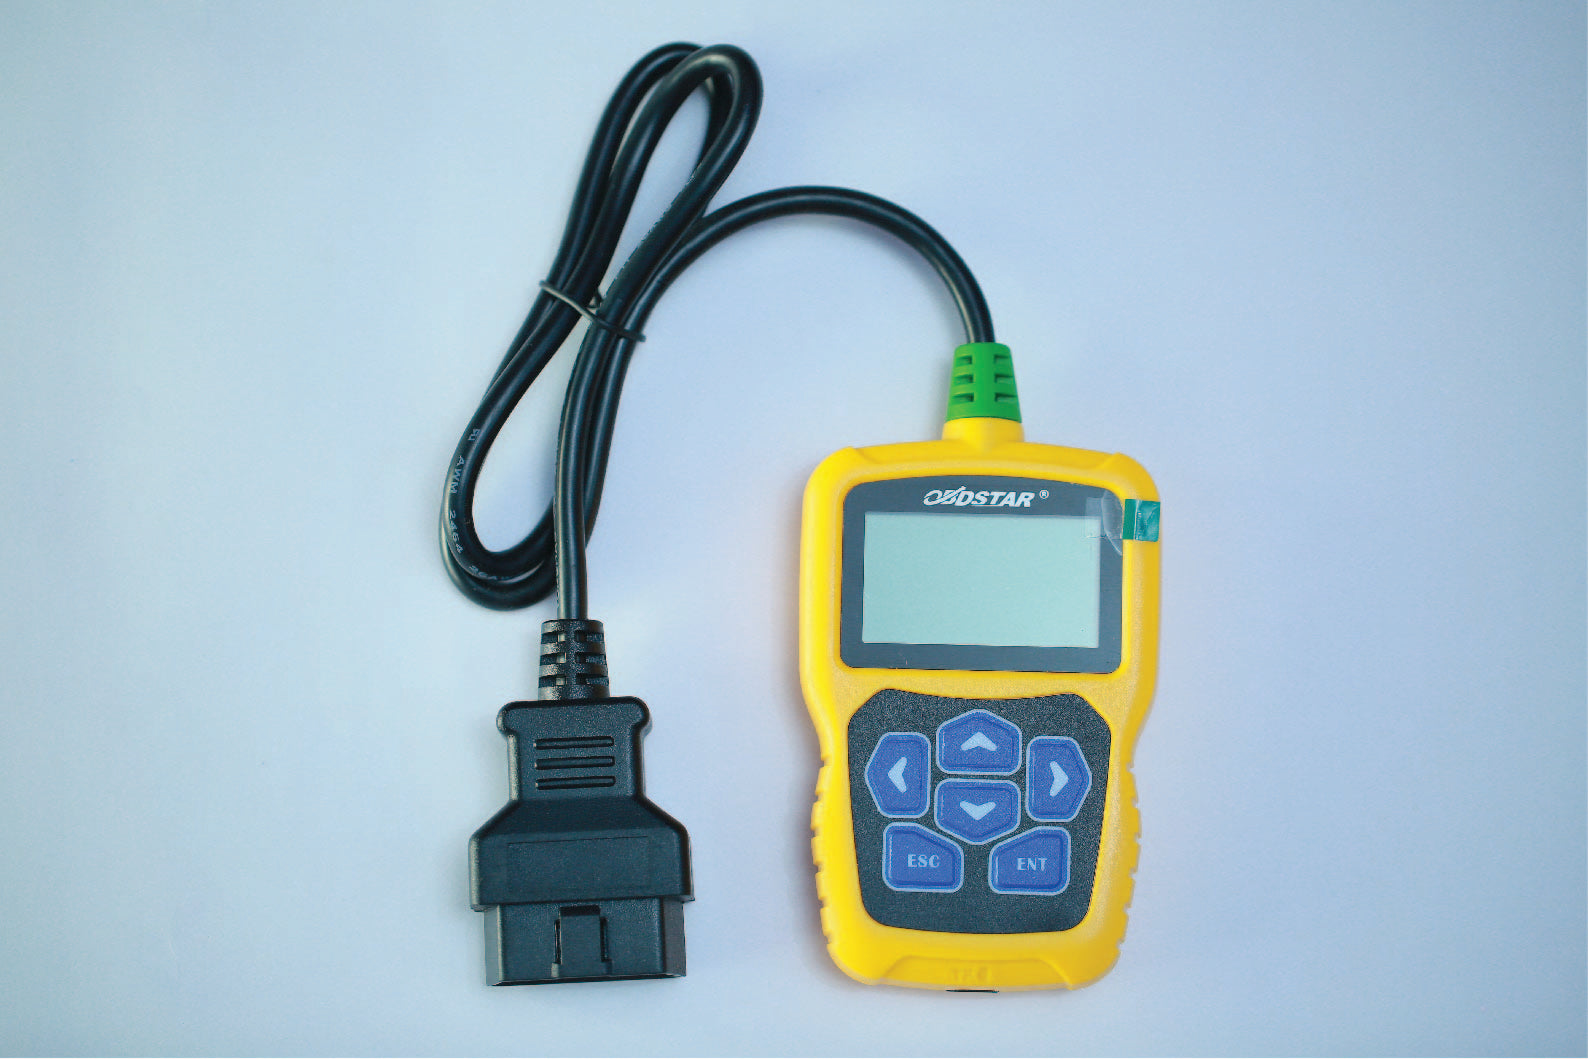 T-300 PRO - A tool for mahindra key programming